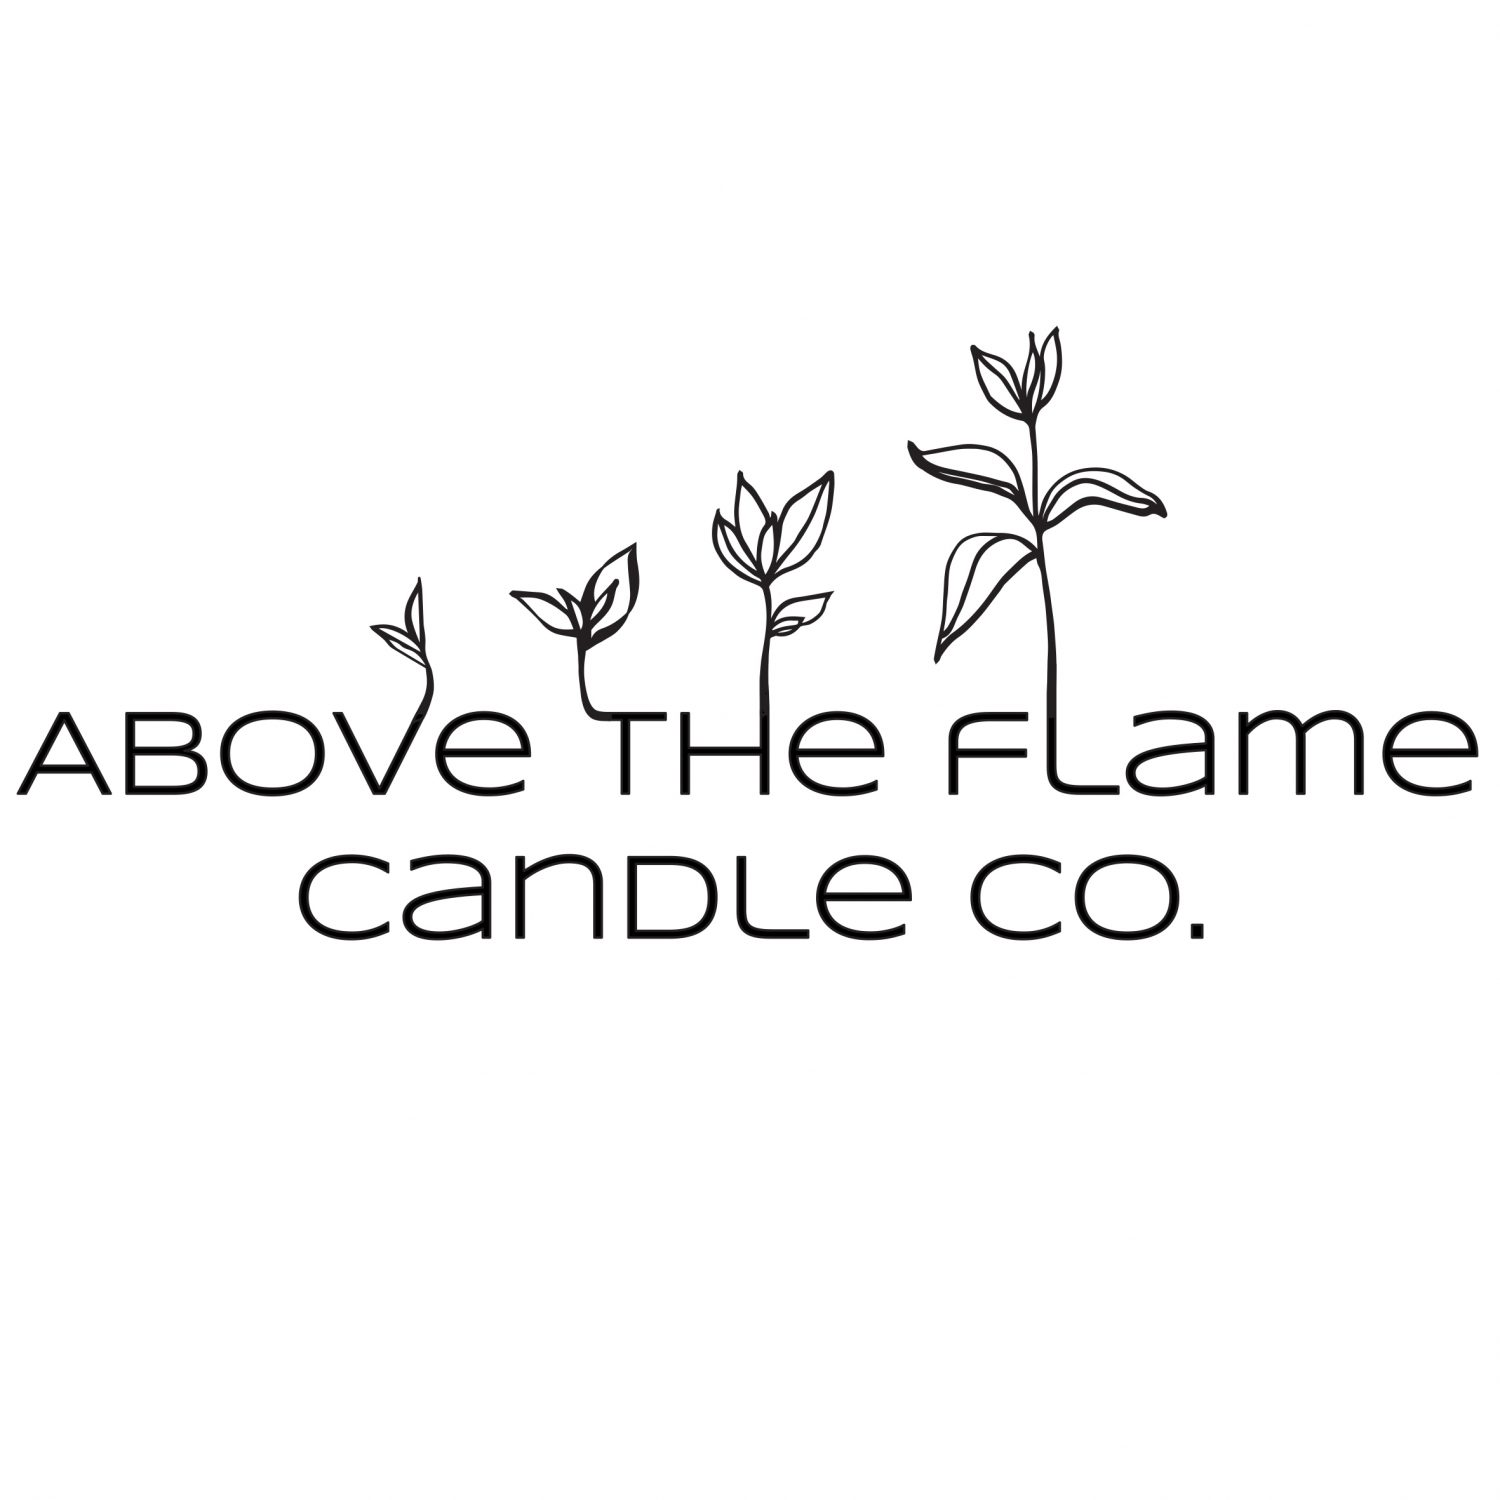 Above The Flame Candle Co.